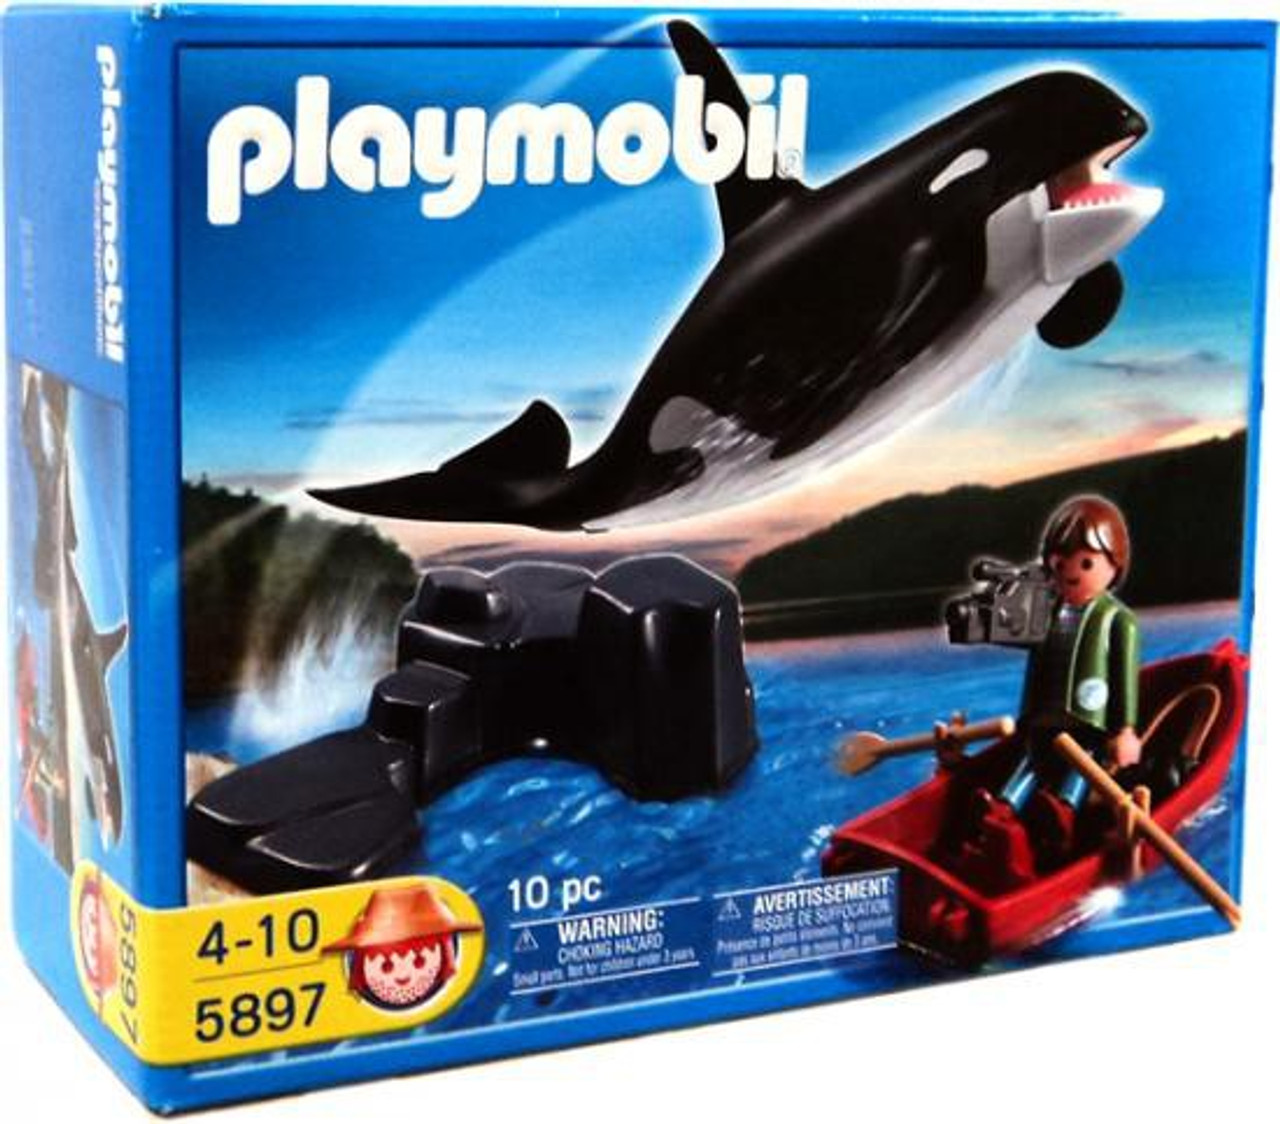 Playmobil Harbor Whale and Fisherman Set #5897